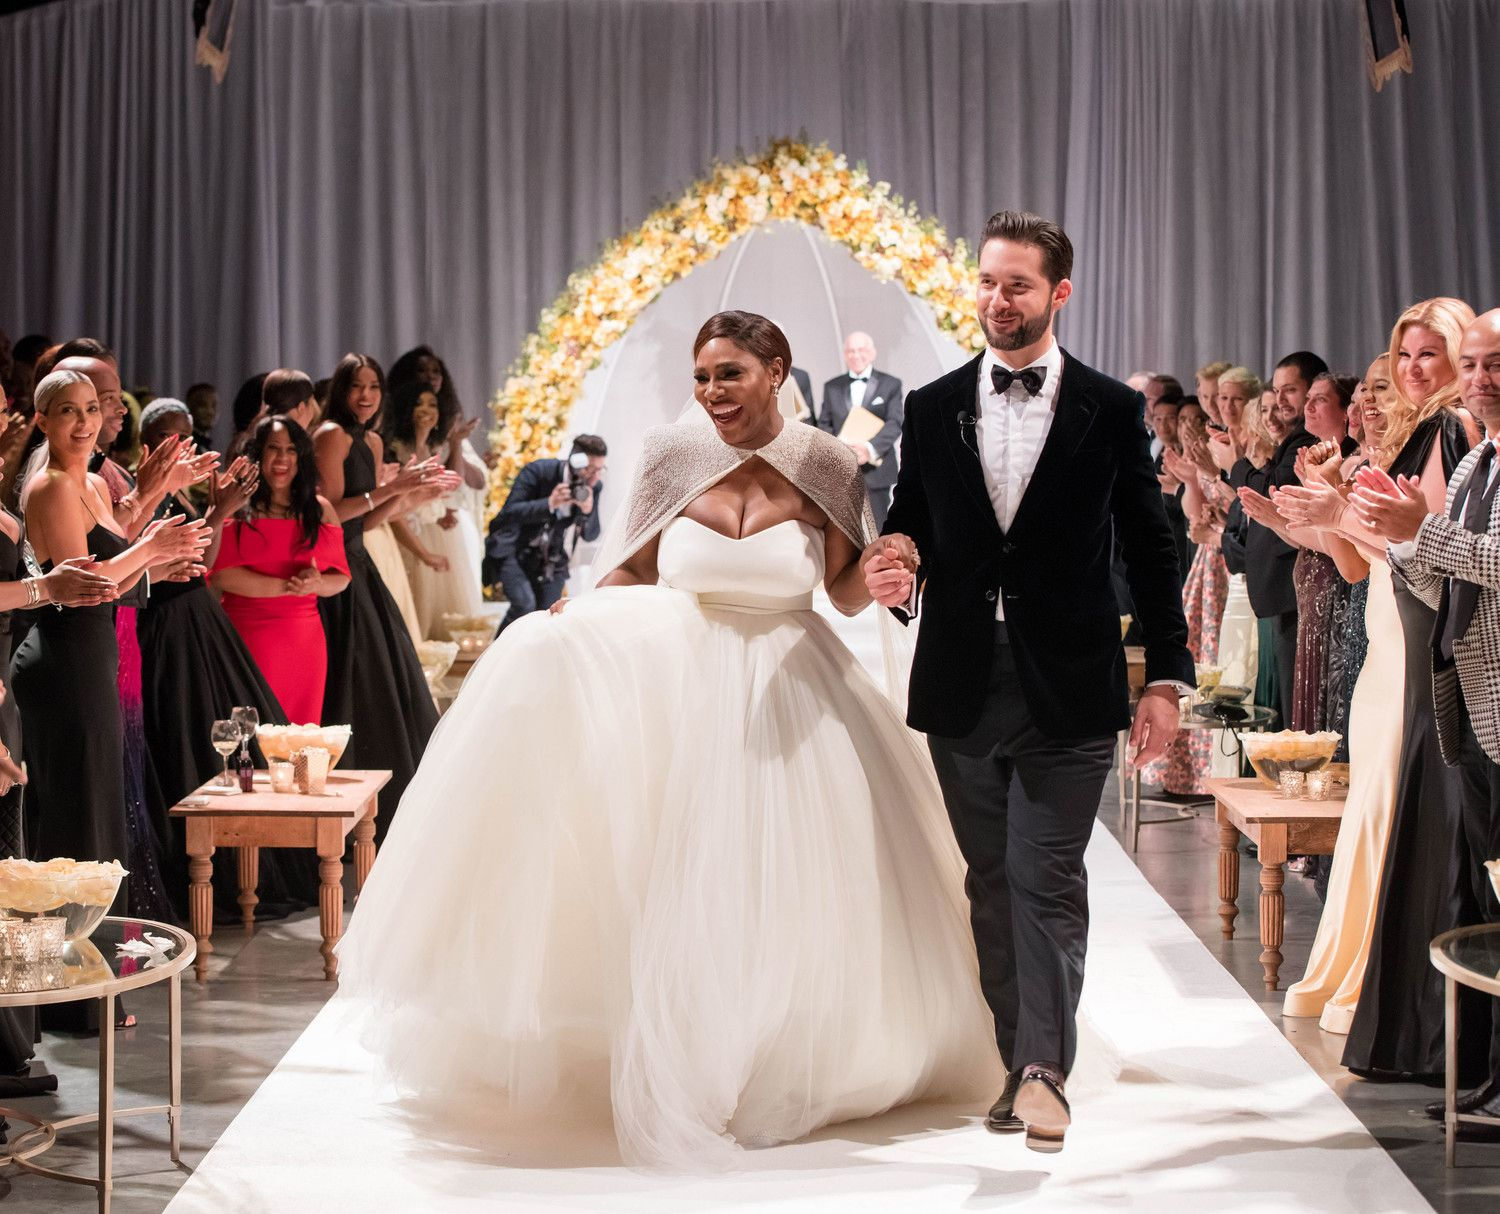 The Tennis Champion And Reddit Co Founder S Beauty And The Beast Themed Wedding Definitely In Serena Williams Wedding Celebrity Wedding Dresses Serena Williams